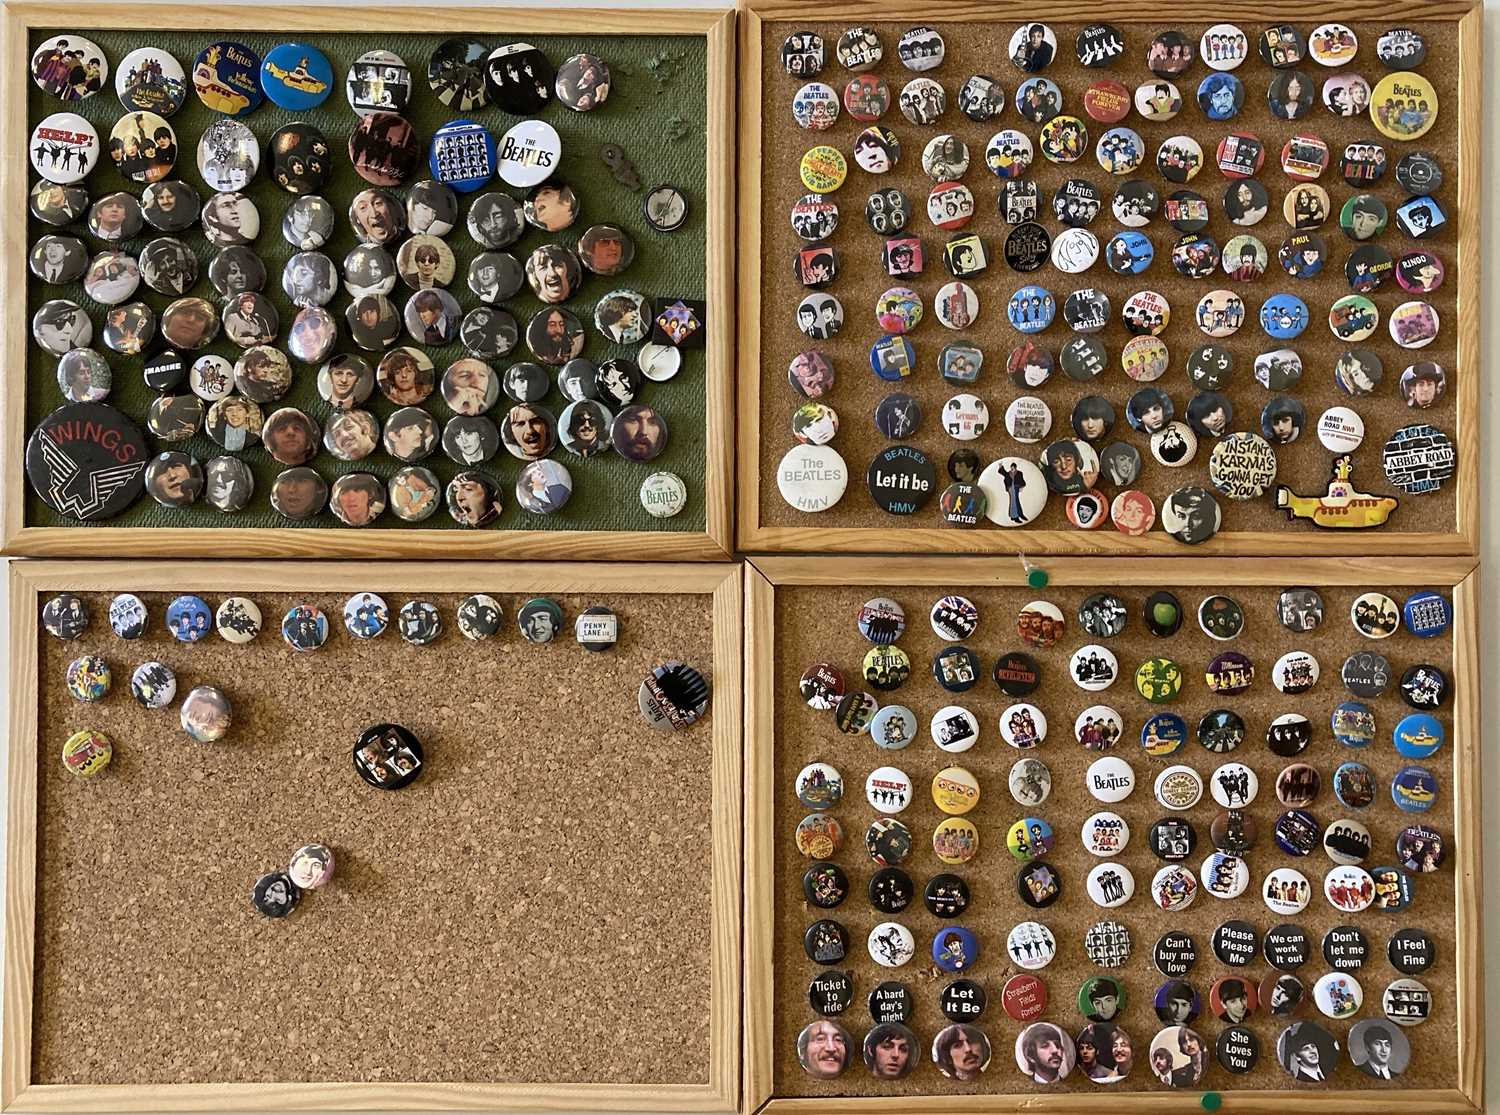 BEATLES BADGE COLLECTION. - Image 3 of 4